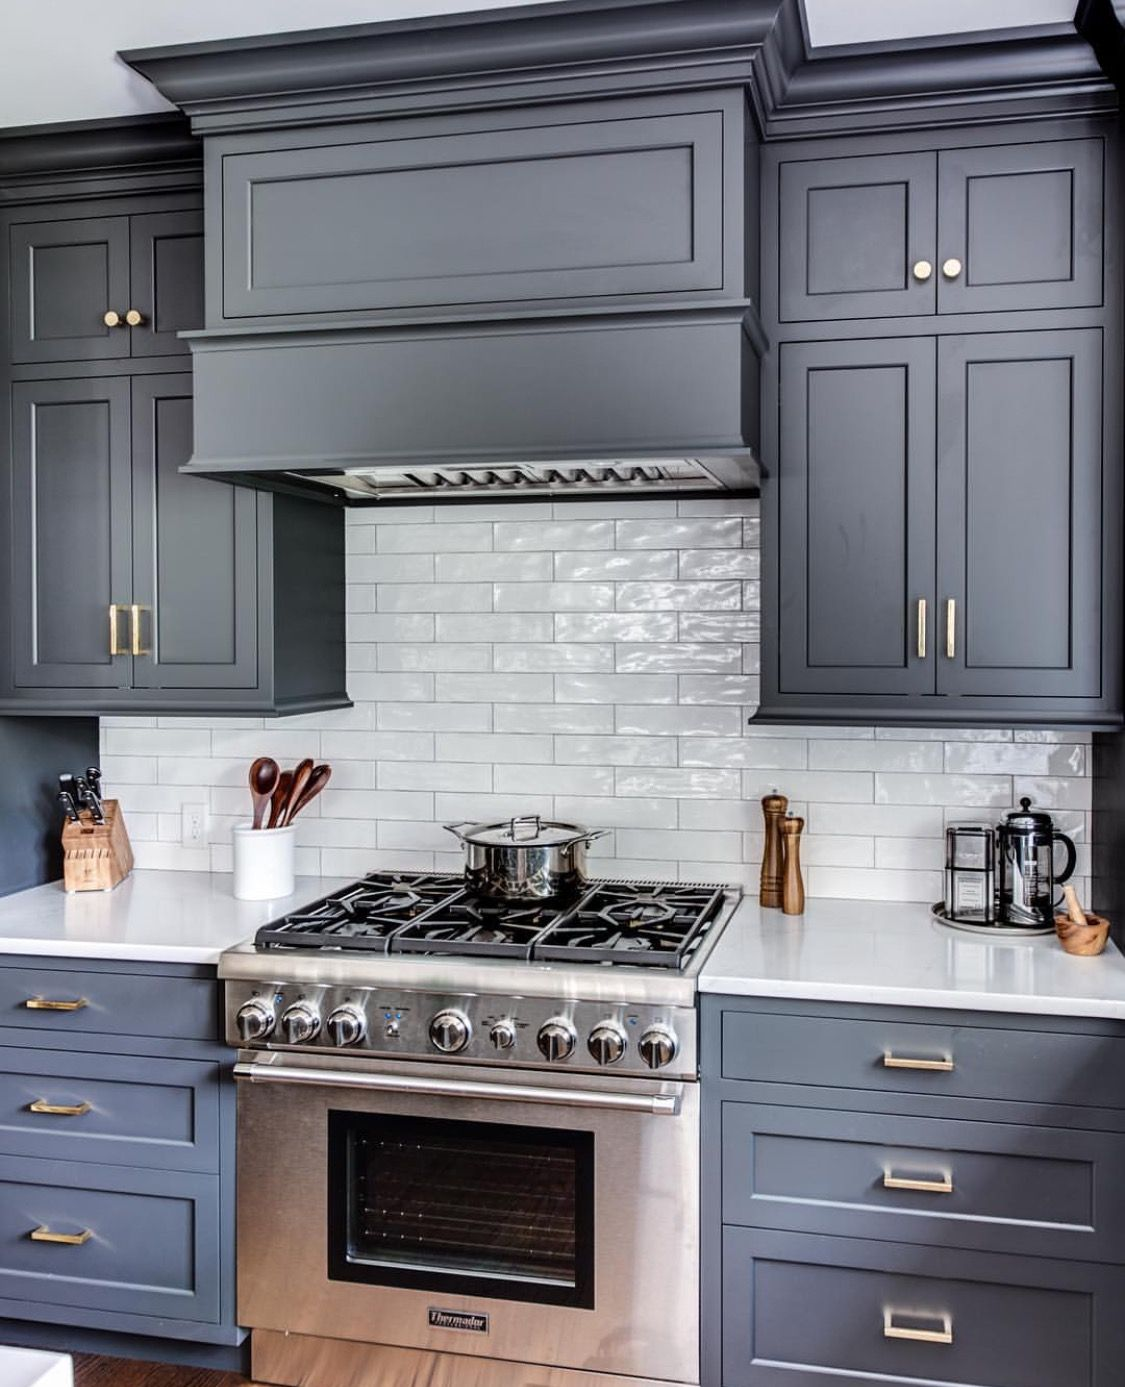 Benjamin Moore Colors For Kitchen: Cabinet Color: Wrought Iron By Benjamin Moore Range And